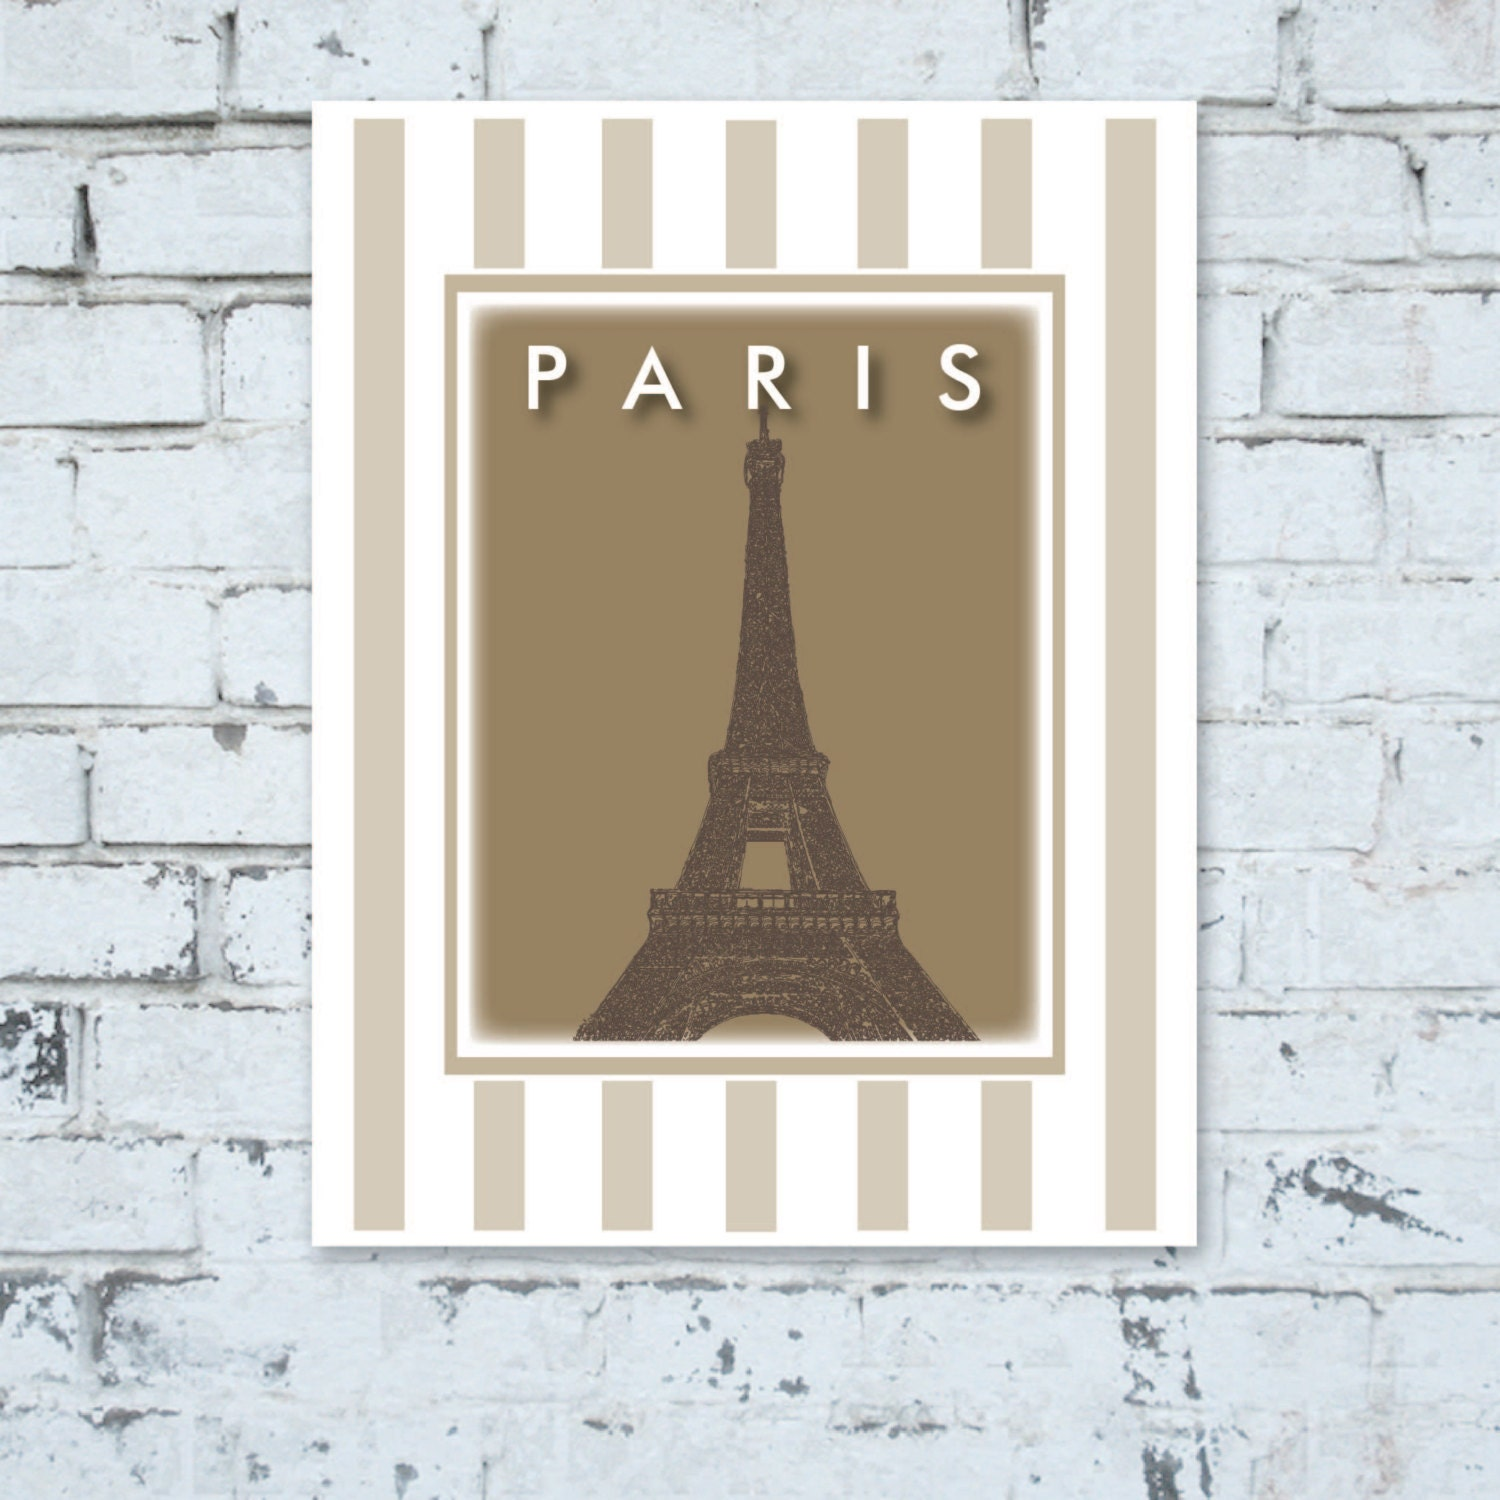 Small Eiffel Tower Wall Decor : Paris eiffel tower art print wall decor zrc by portofprints